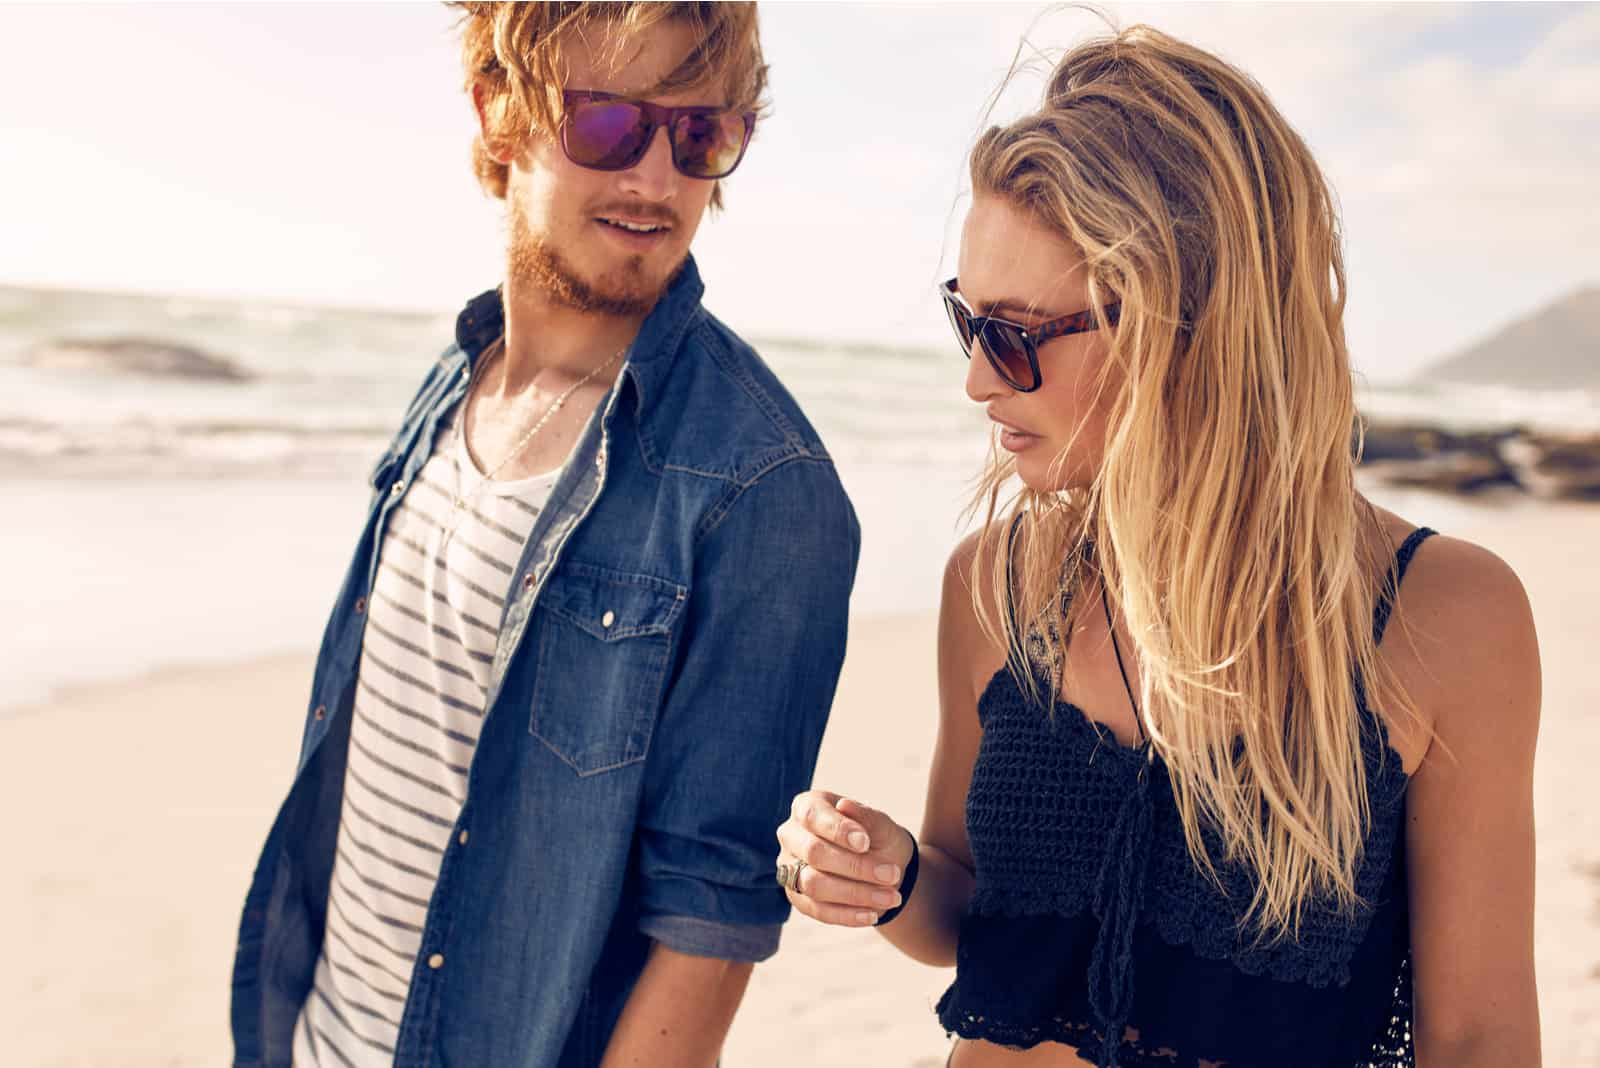 a man and a woman are walking along the beach and talking